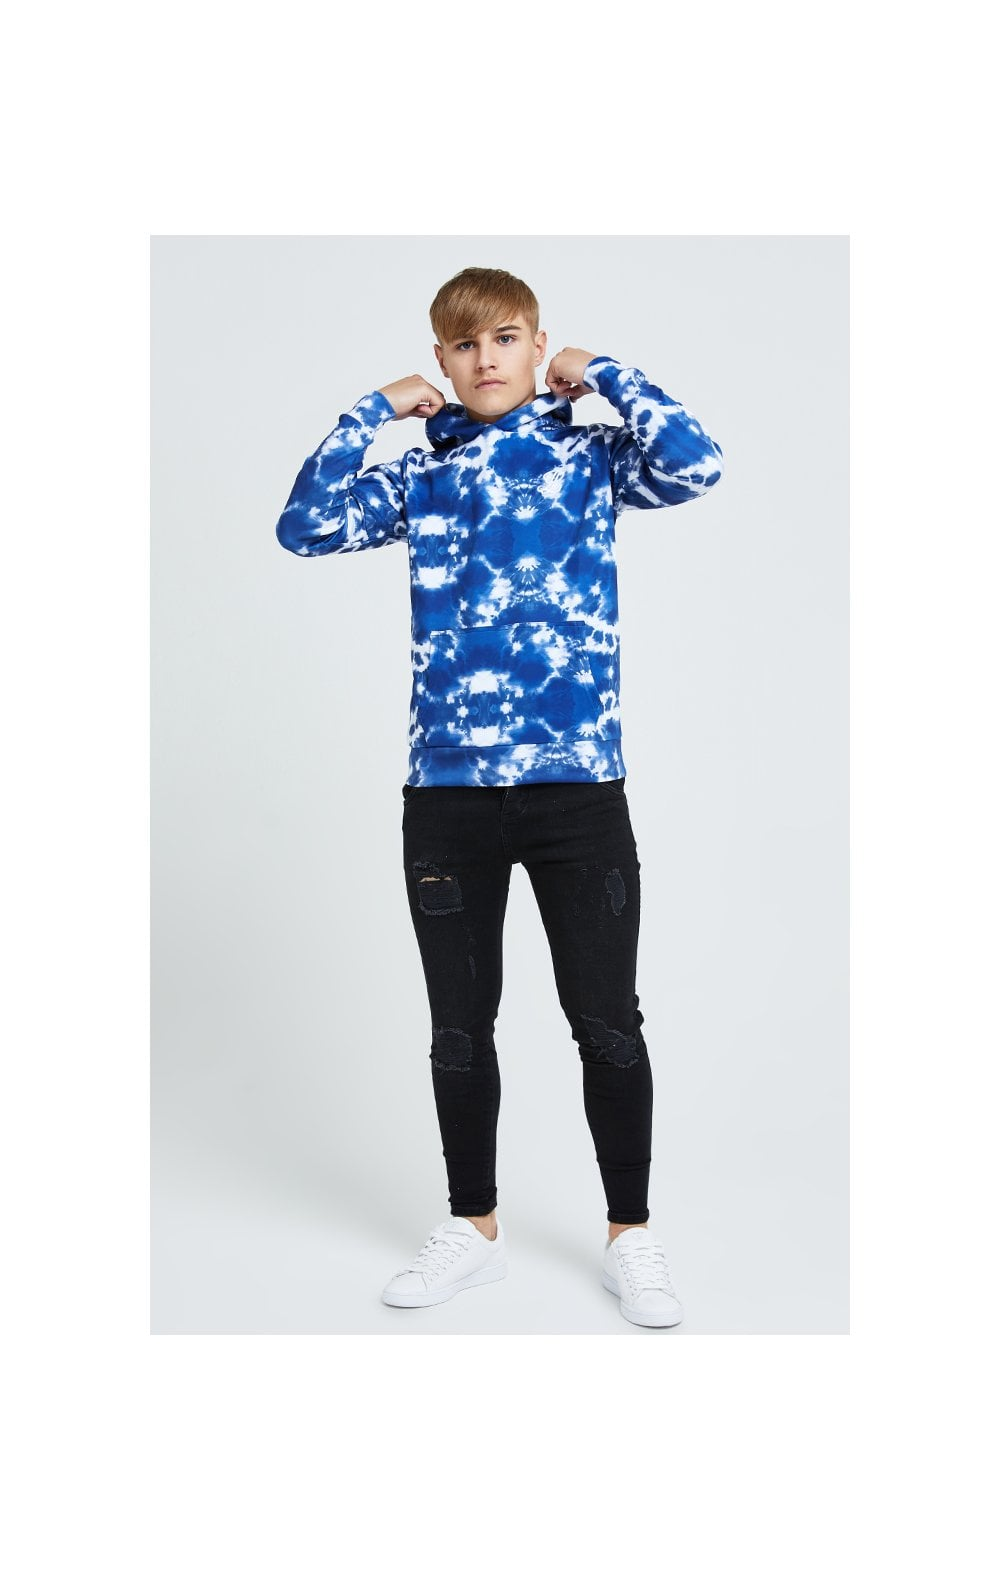 Illusive London Tie Dye Print Hoodie - Blue & White